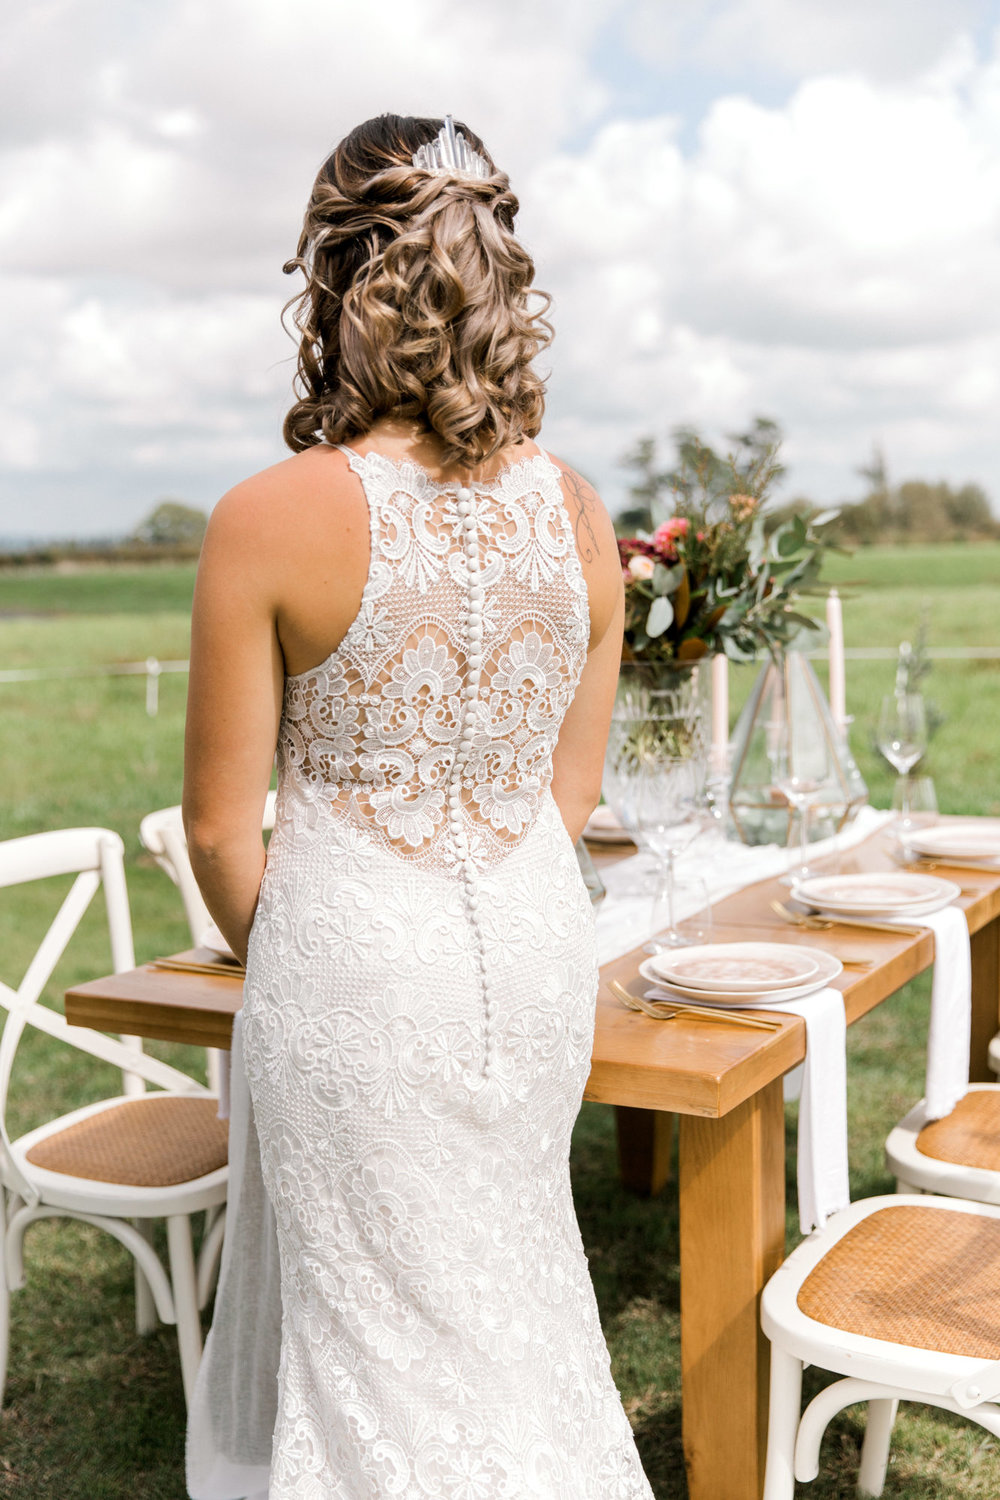 Illusion Lace Back | Astra Bridal | Sottero & Midgley - Zayn | Petal Passion | matamata country blush styled shoot (C) Sweet Events Photography 2018-1064.jpg